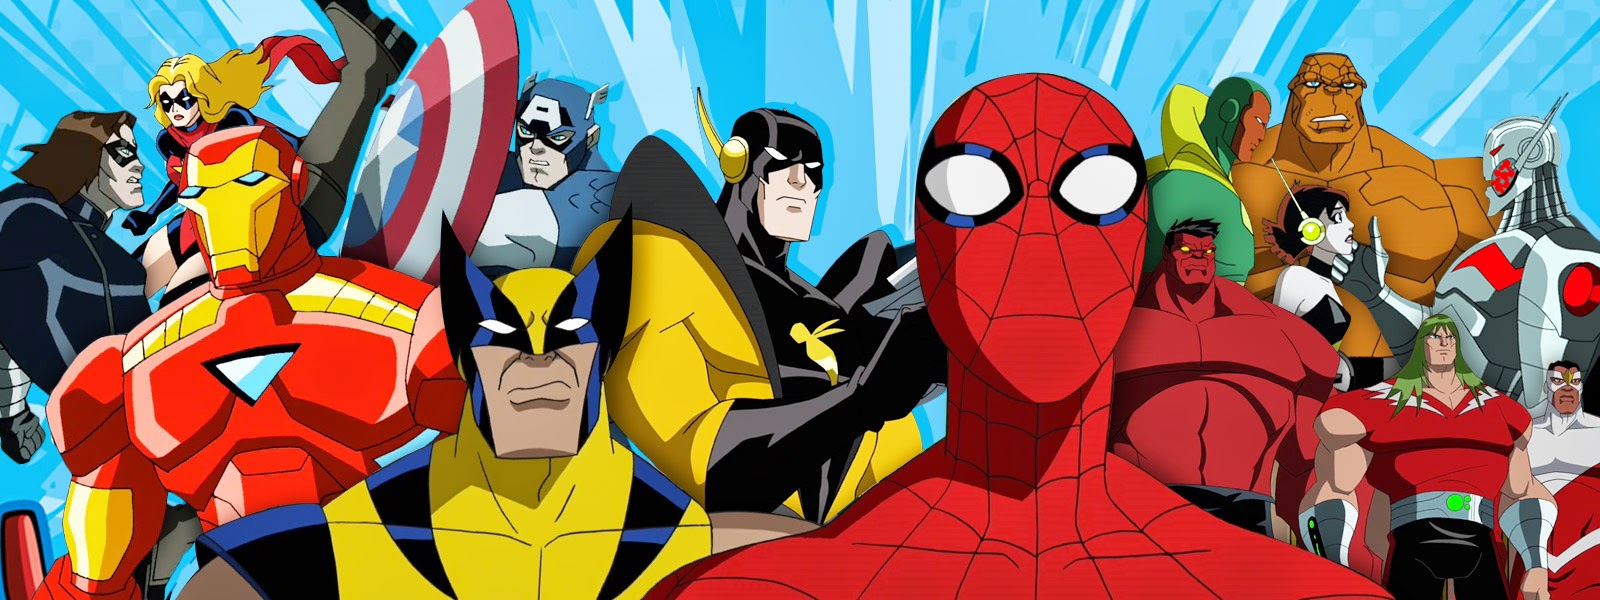 the avengers earth s mightiest heroes   film animation